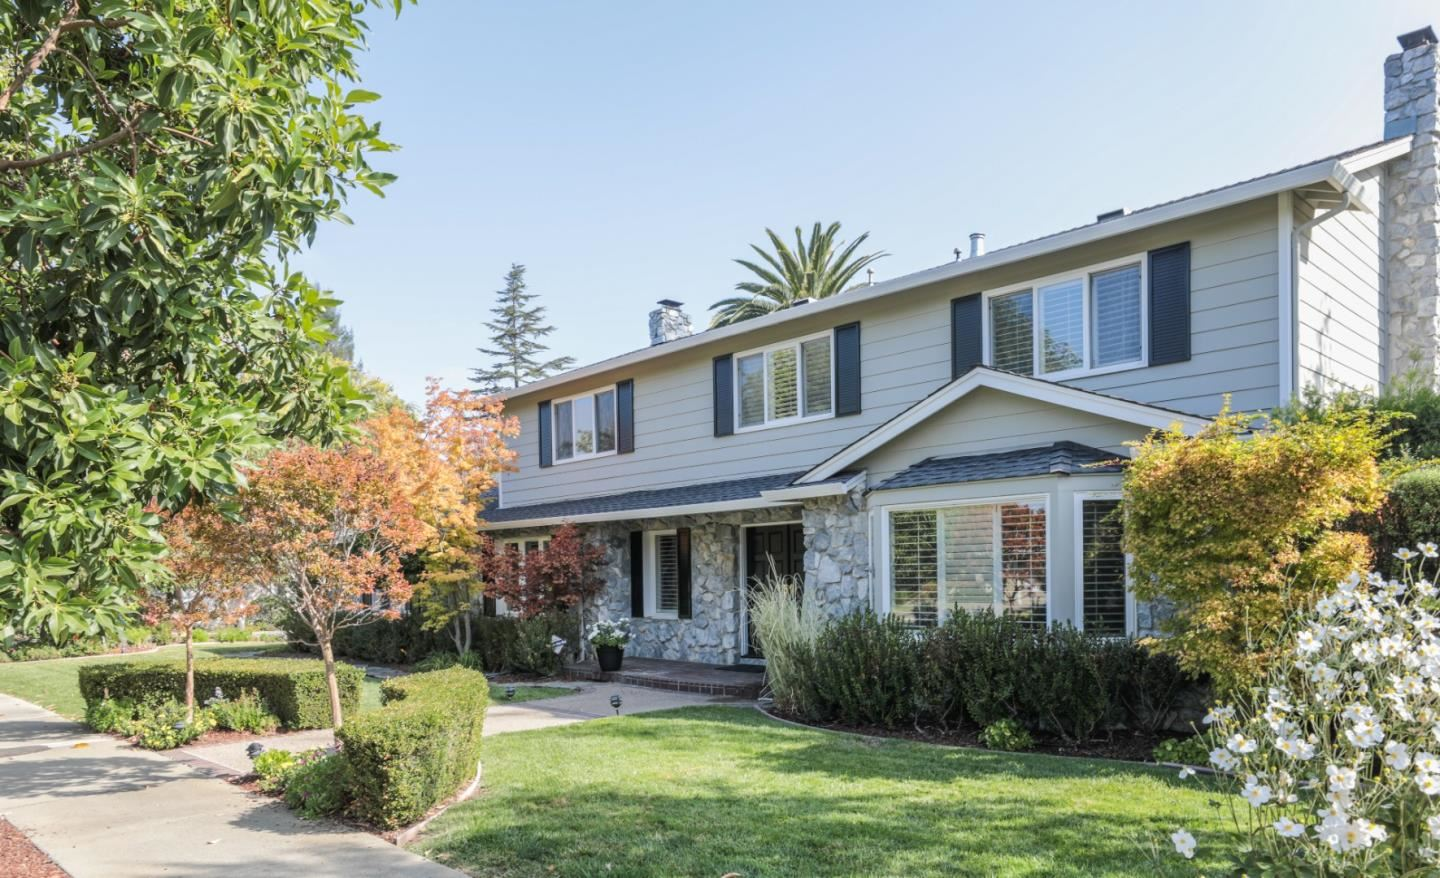 Photo for 417 Los Altos AVE, LOS ALTOS, CA 94022 (MLS # ML81779160)